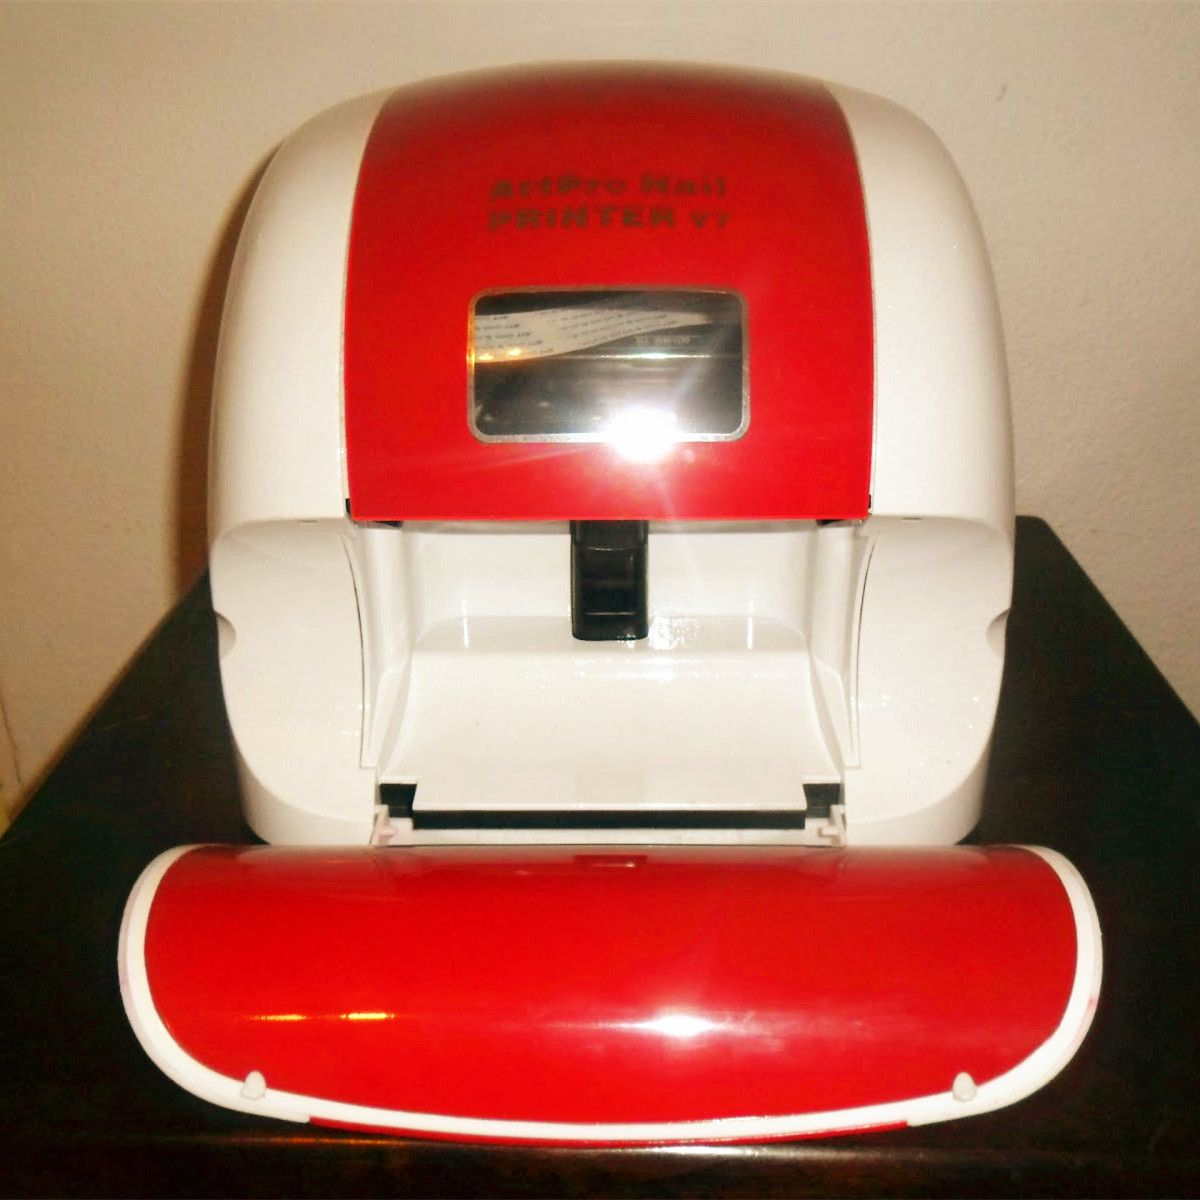 NAIL PRINTER MACHINE DIGITAL NAIL ART PRINTER – TYPE A | Fingernail ...